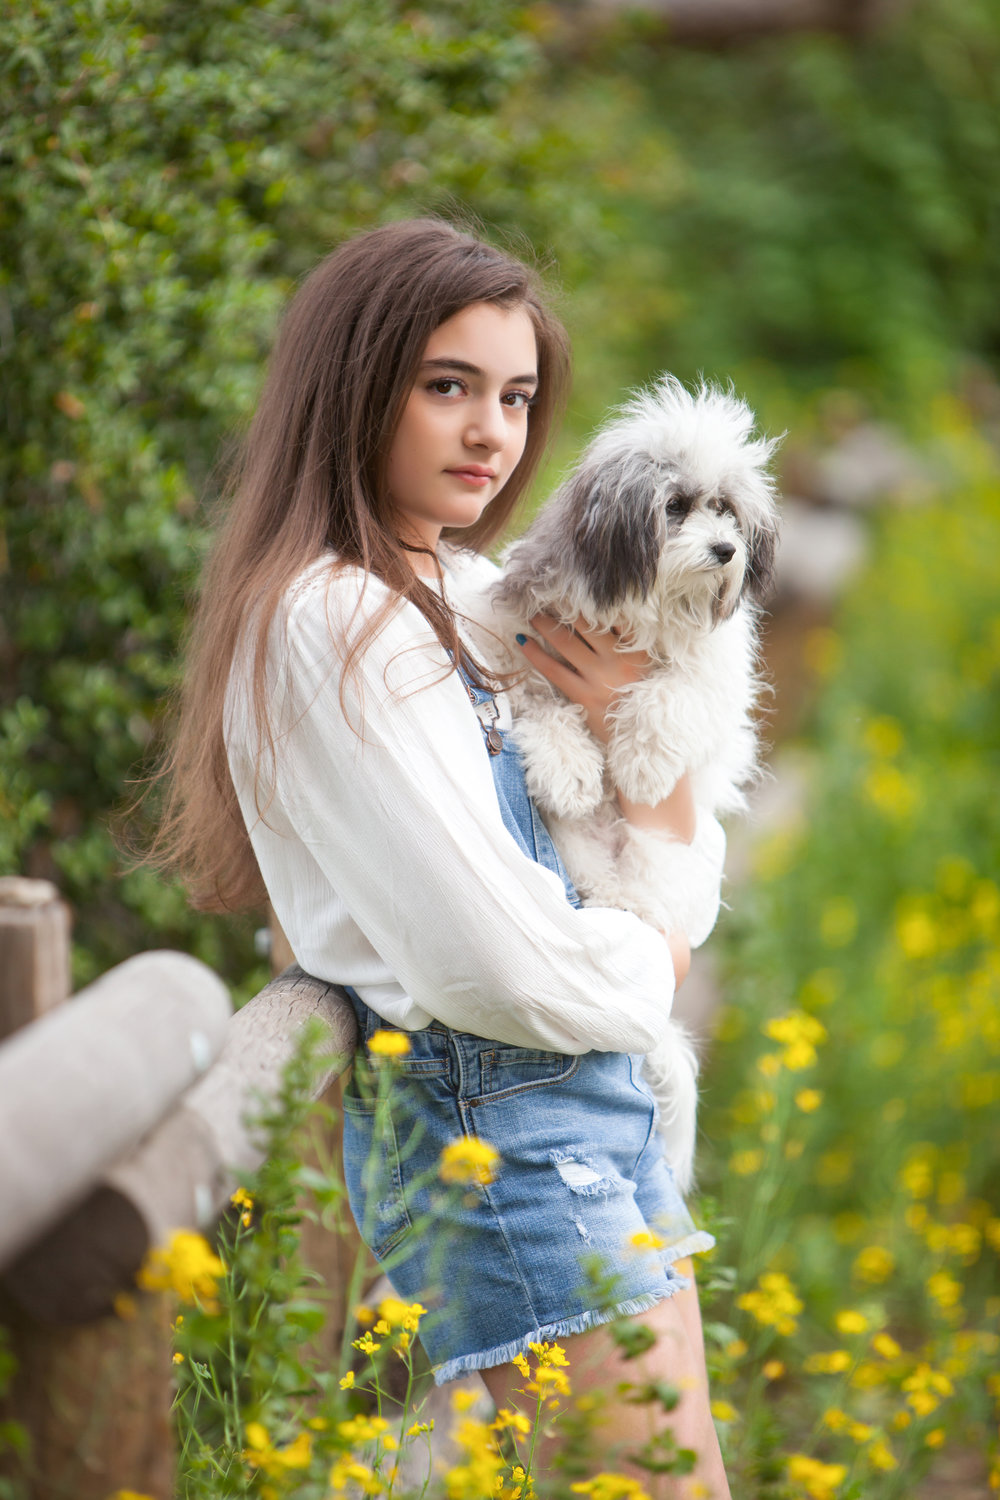 Prettyirl with long brown hair in the flowers with her dog